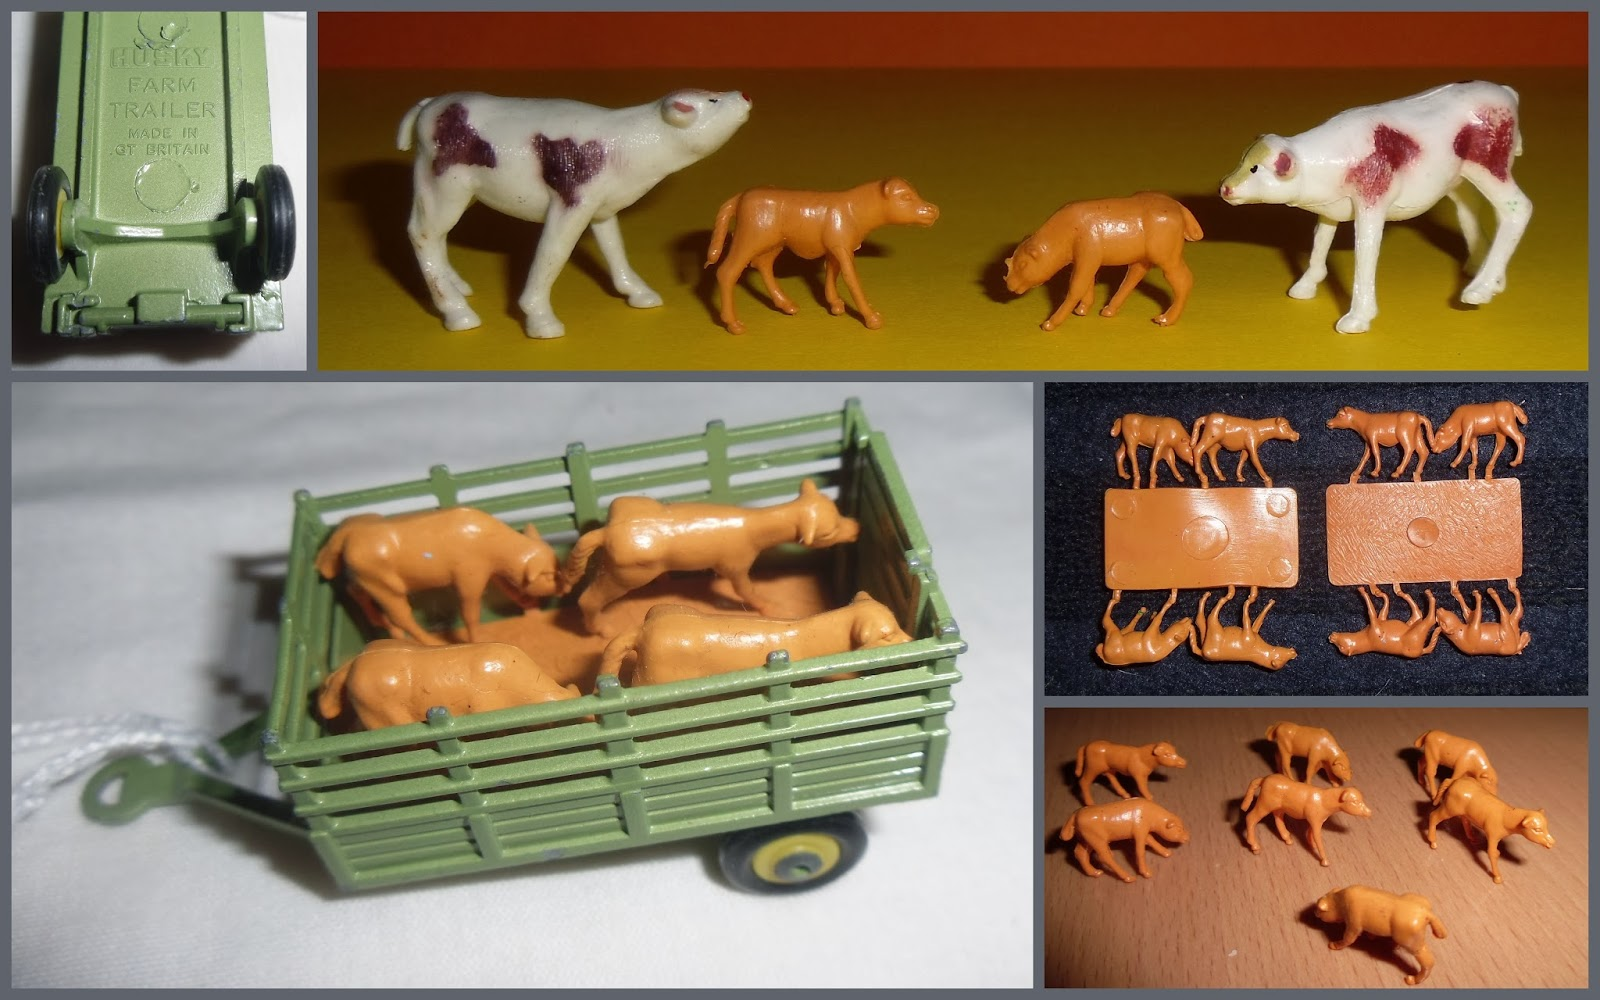 Action Figures Smart Siku Toy Cows Vivid And Great In Style Animals & Dinosaurs